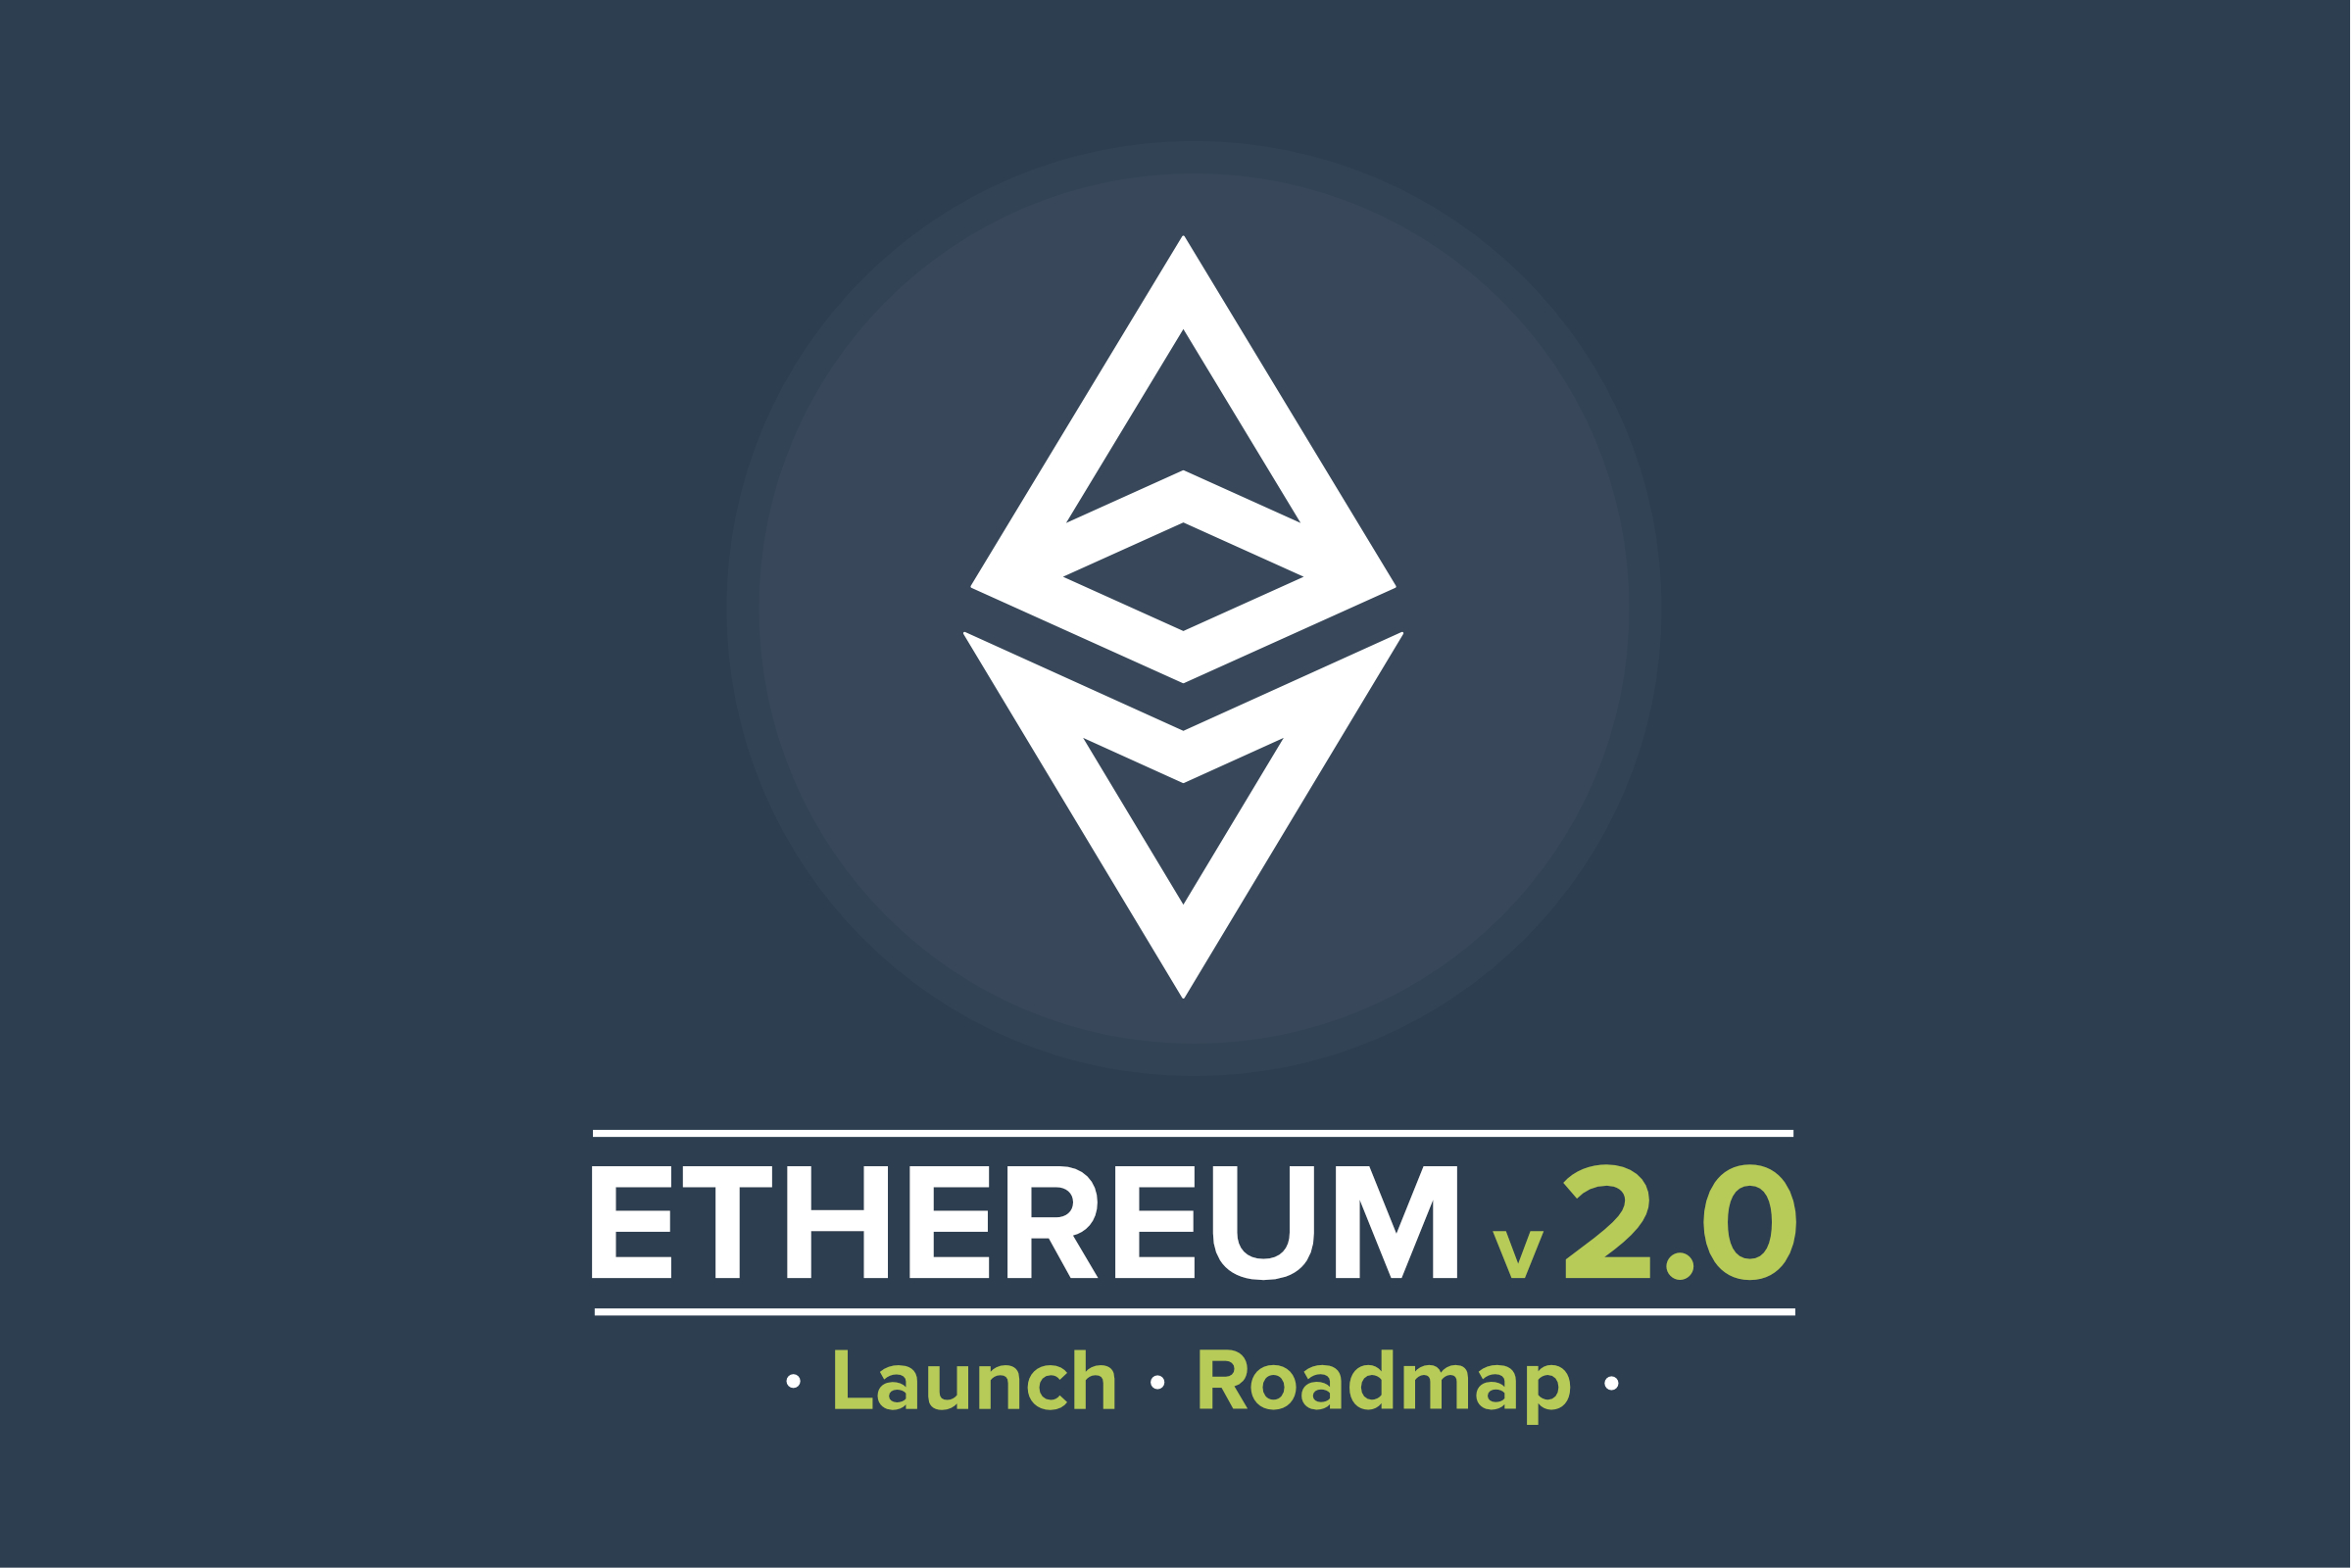 Ethereum 2.0 Release Date and Roadmap